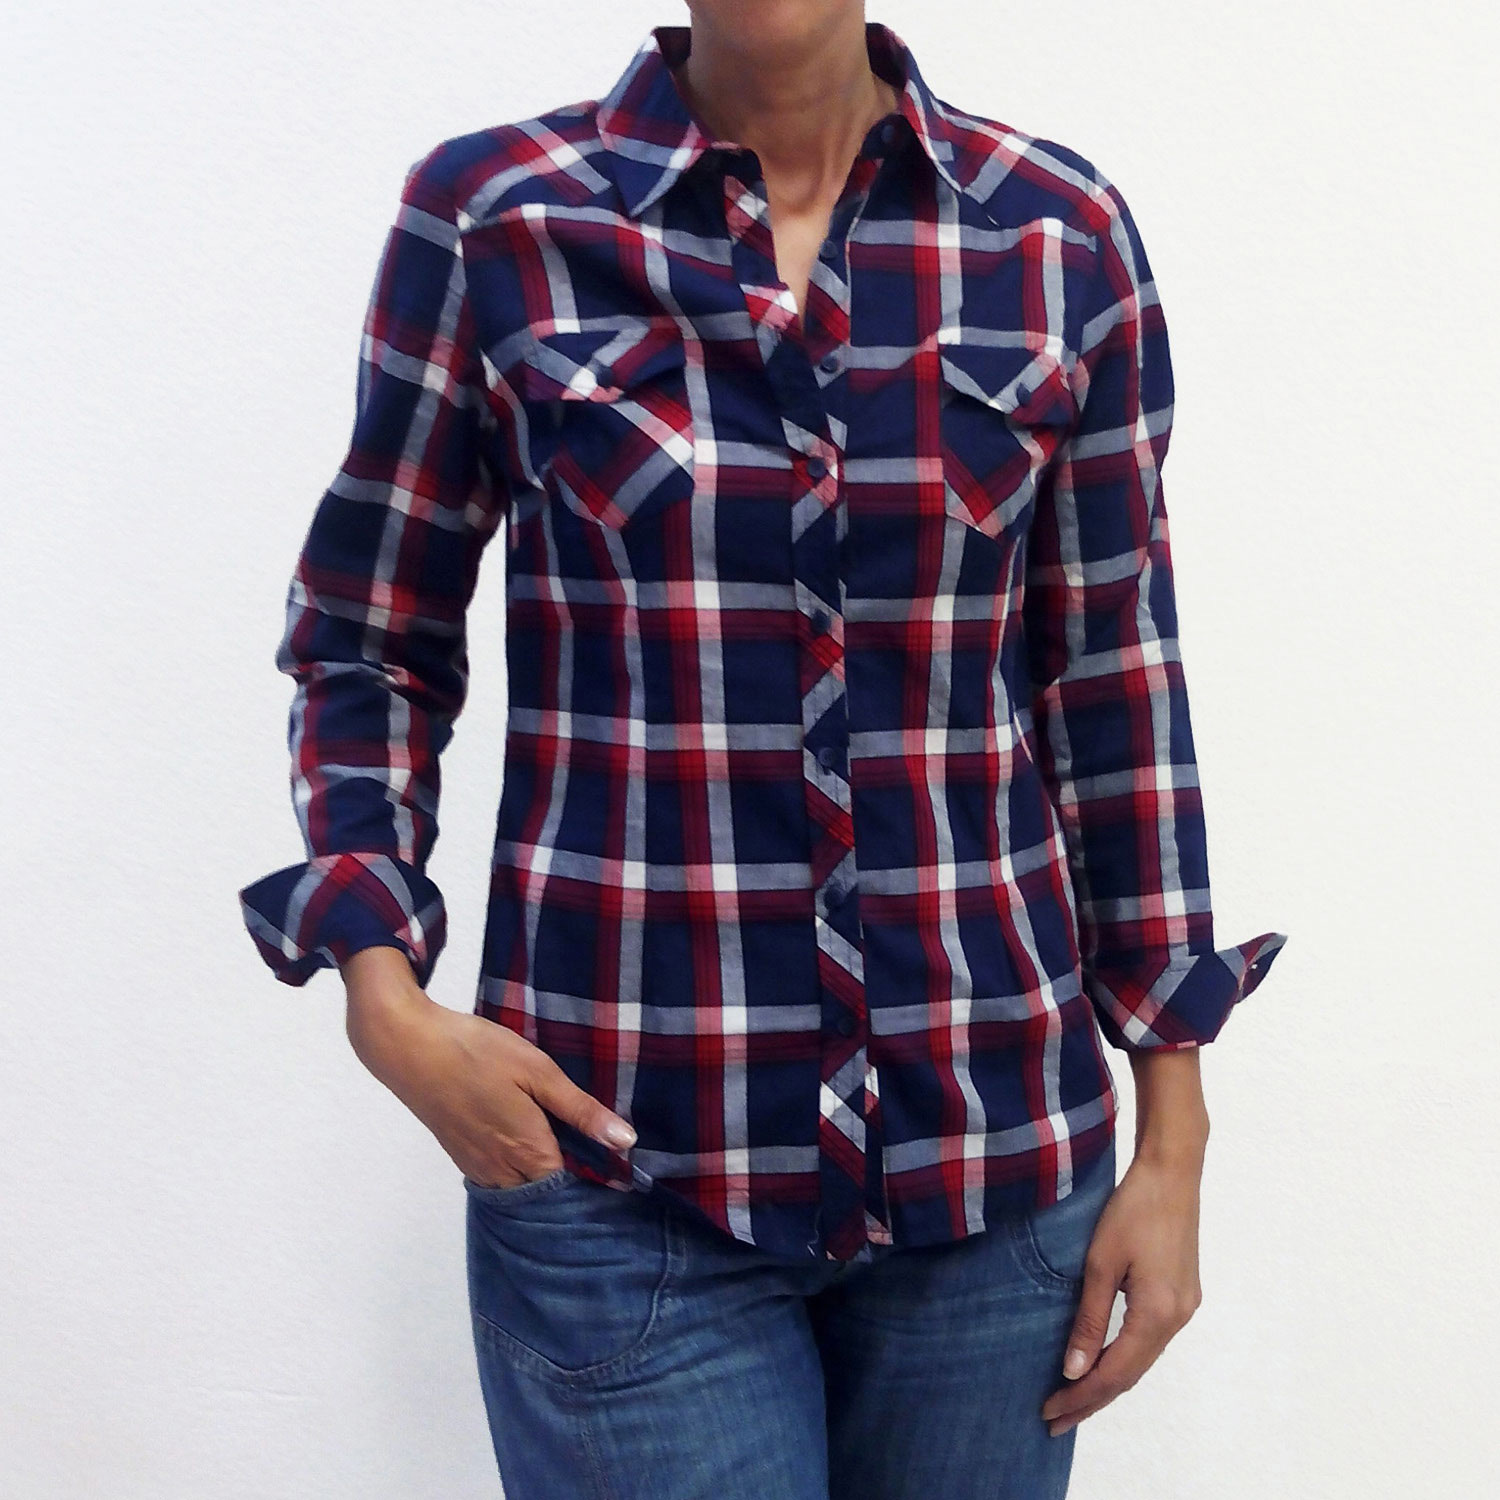 14900c082 Camisa cuadros yoke - ISCLAUJEANS